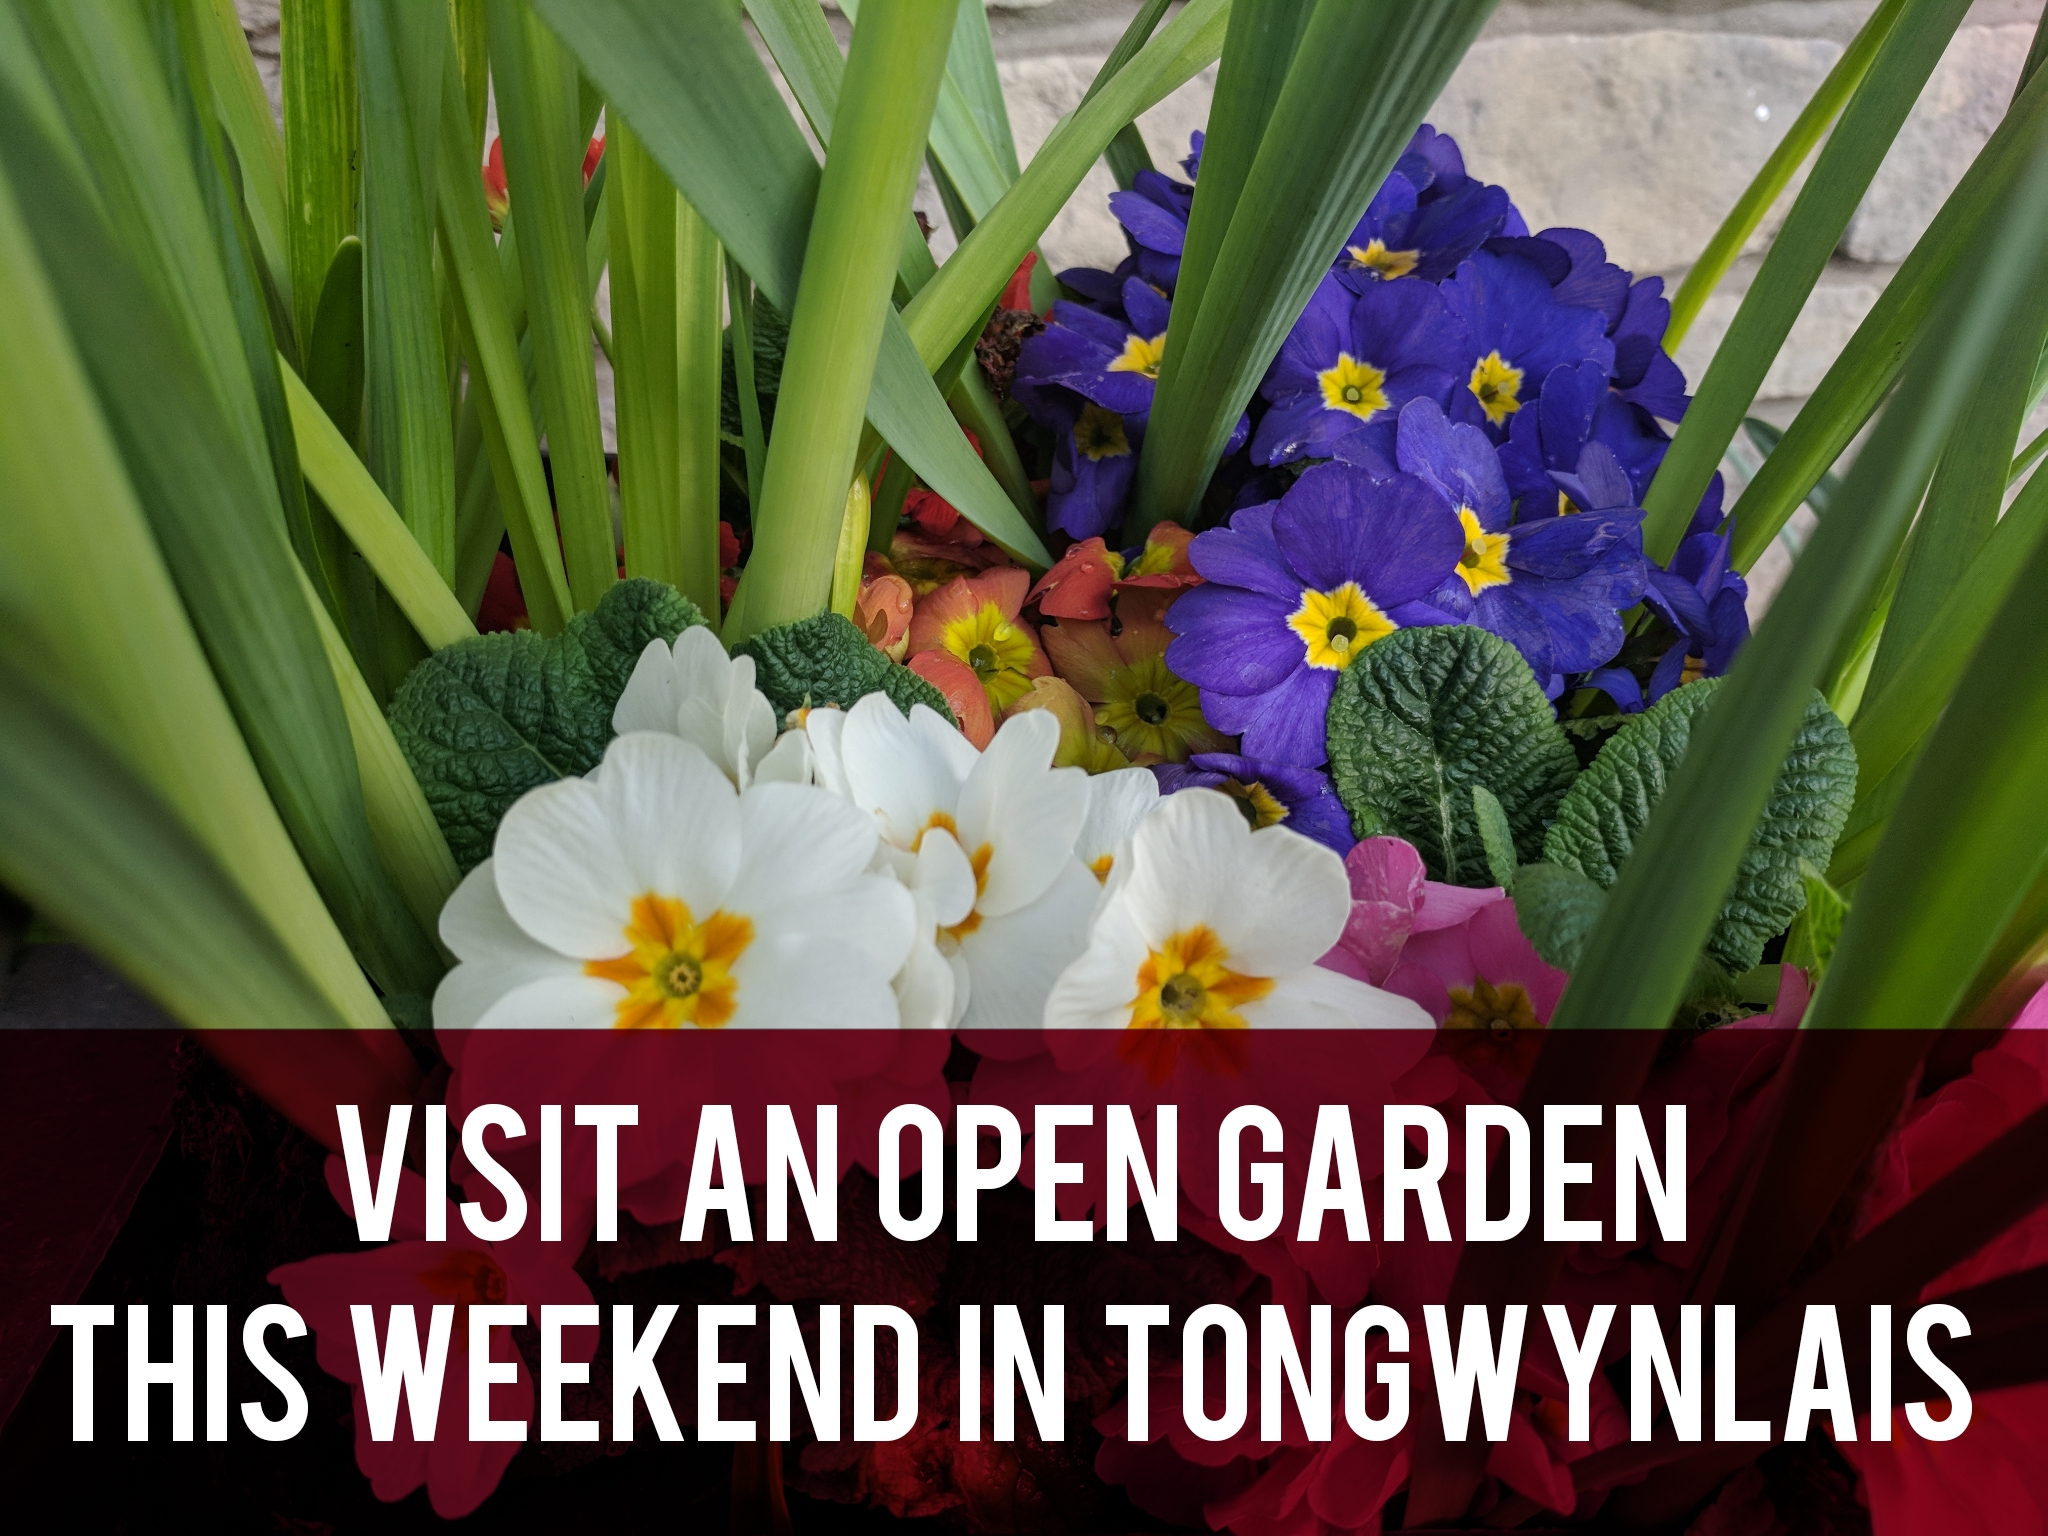 Visit an open garden this weekend in Tongwynlais header